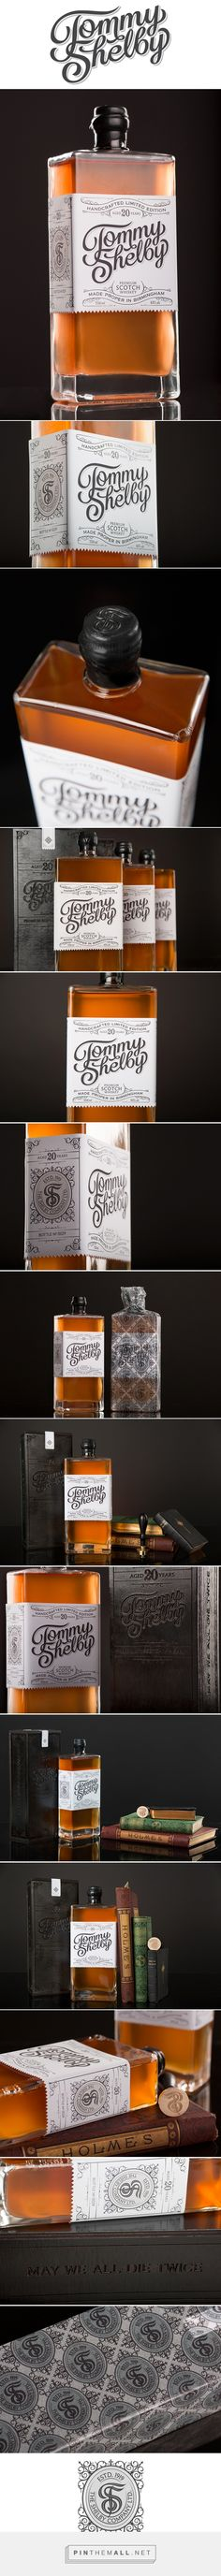 Tommy Shelby Whiskey - Student project Designed by Scott Biersack